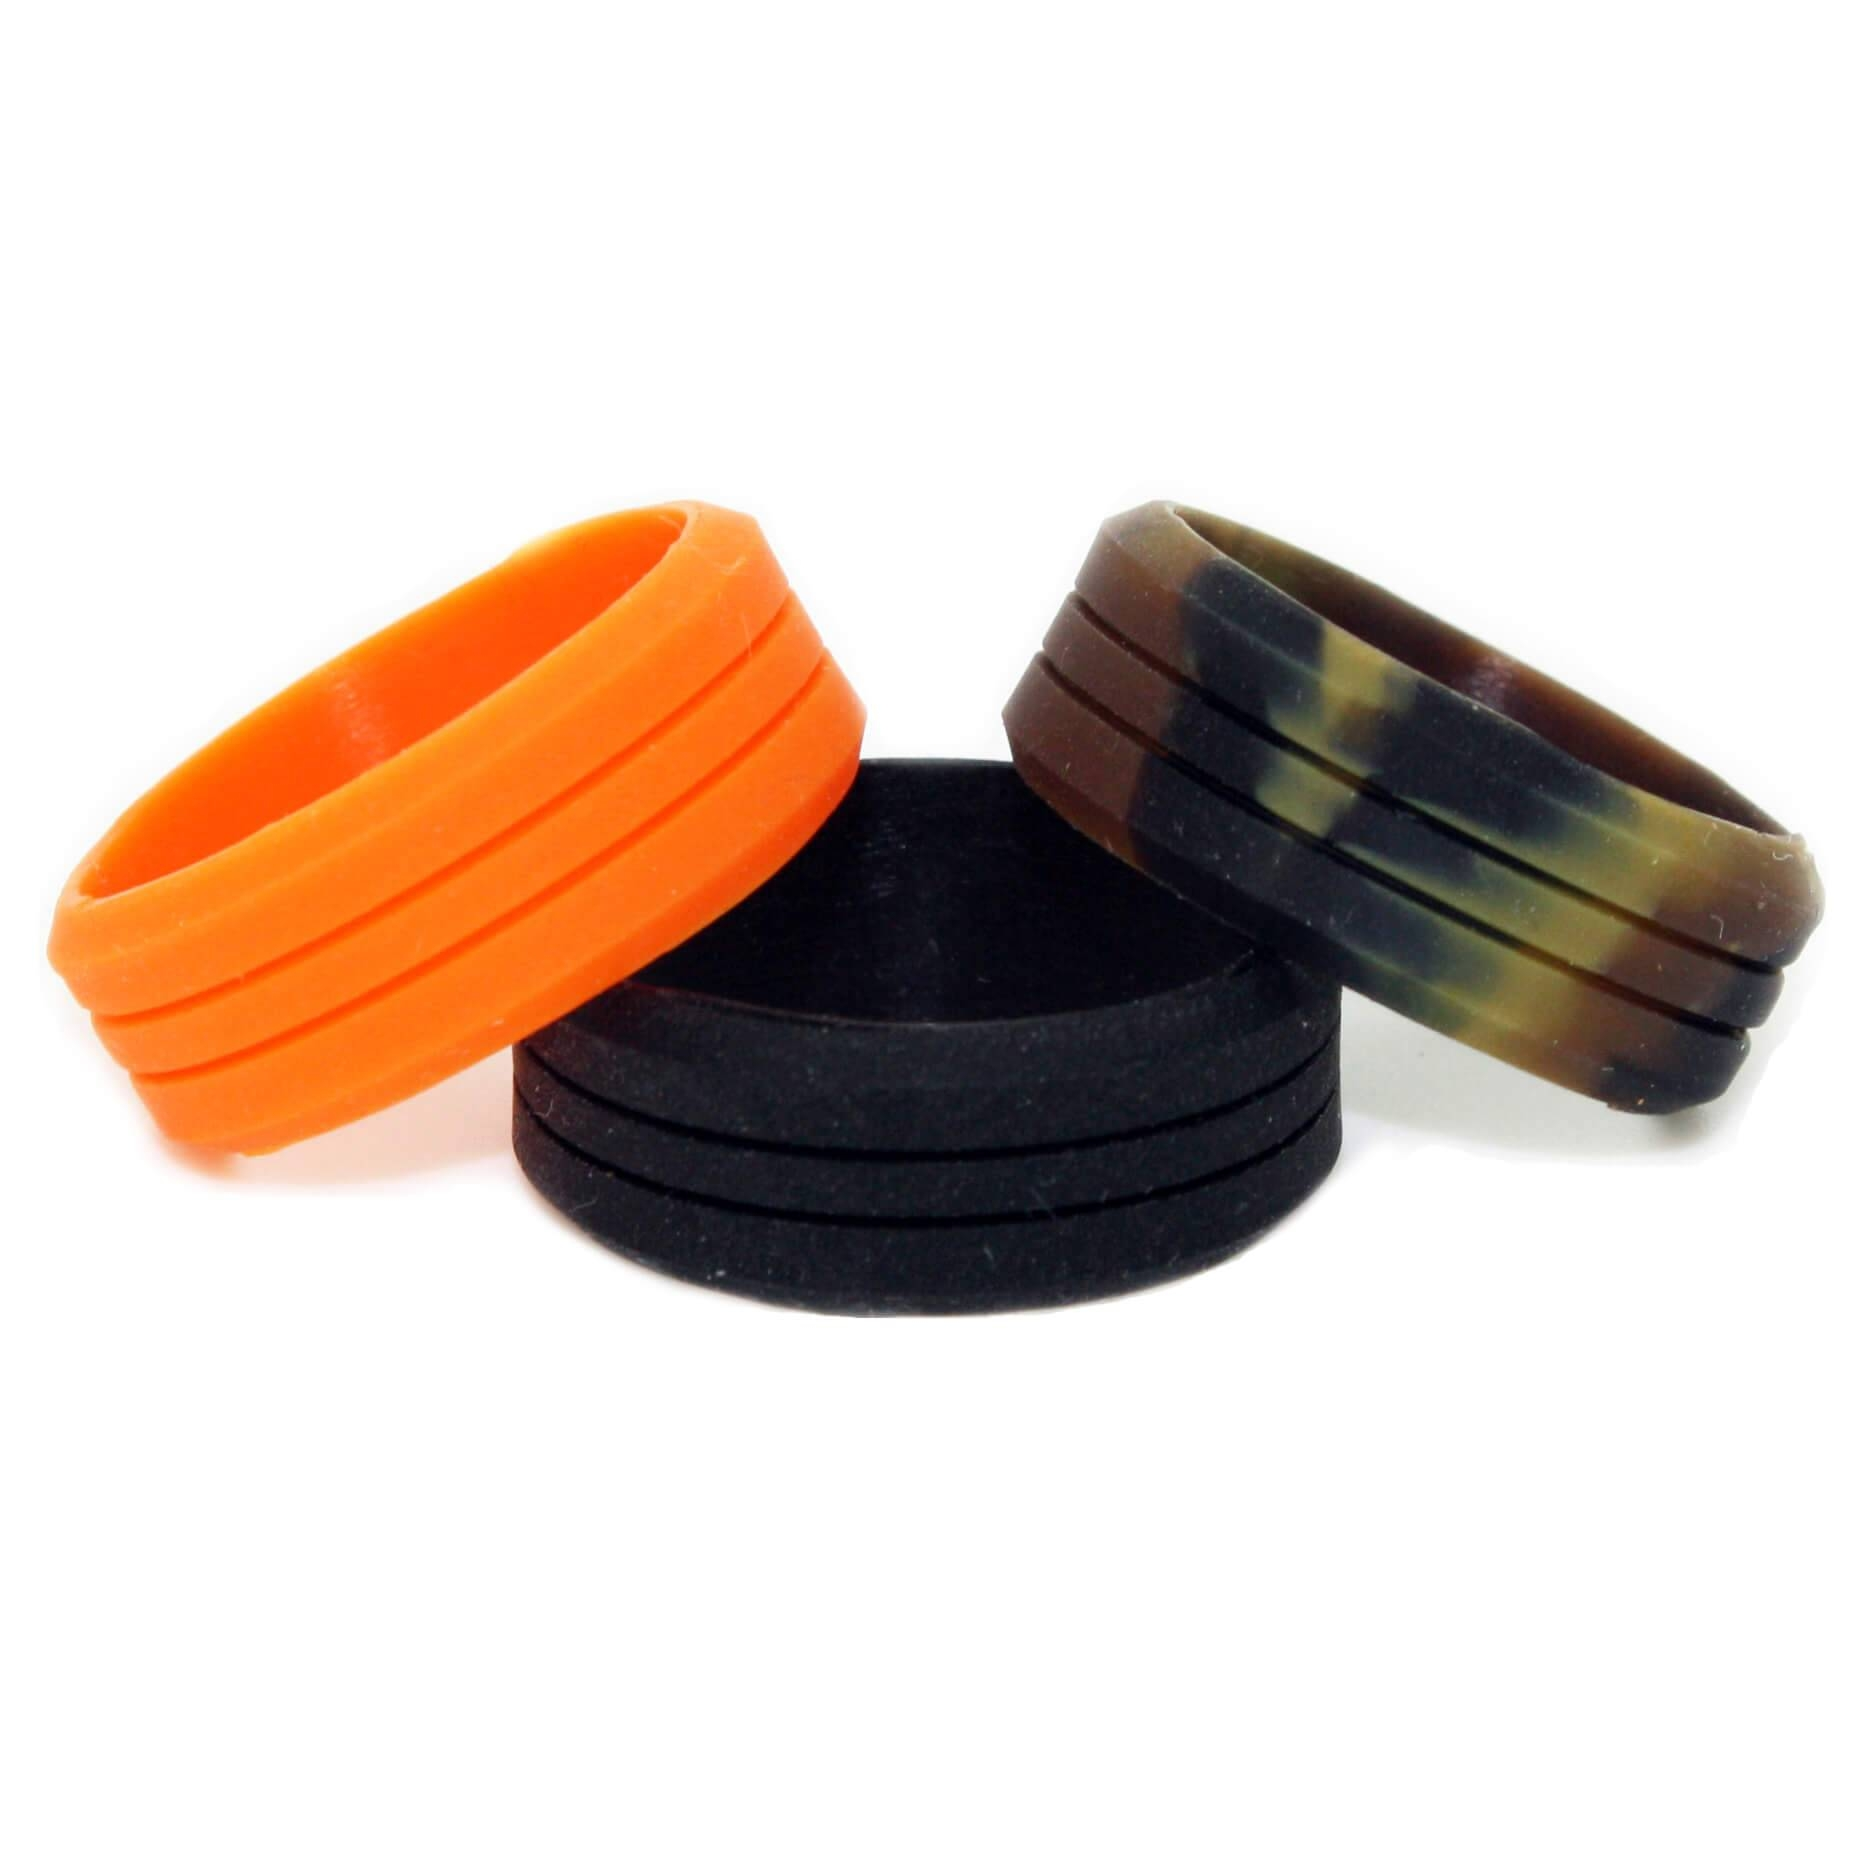 Anti Ring Avulsion Camo Silicone Wedding Ring – 3 Outdoor Ring Pack Intended For Silicone Wedding Bands (View 1 of 15)